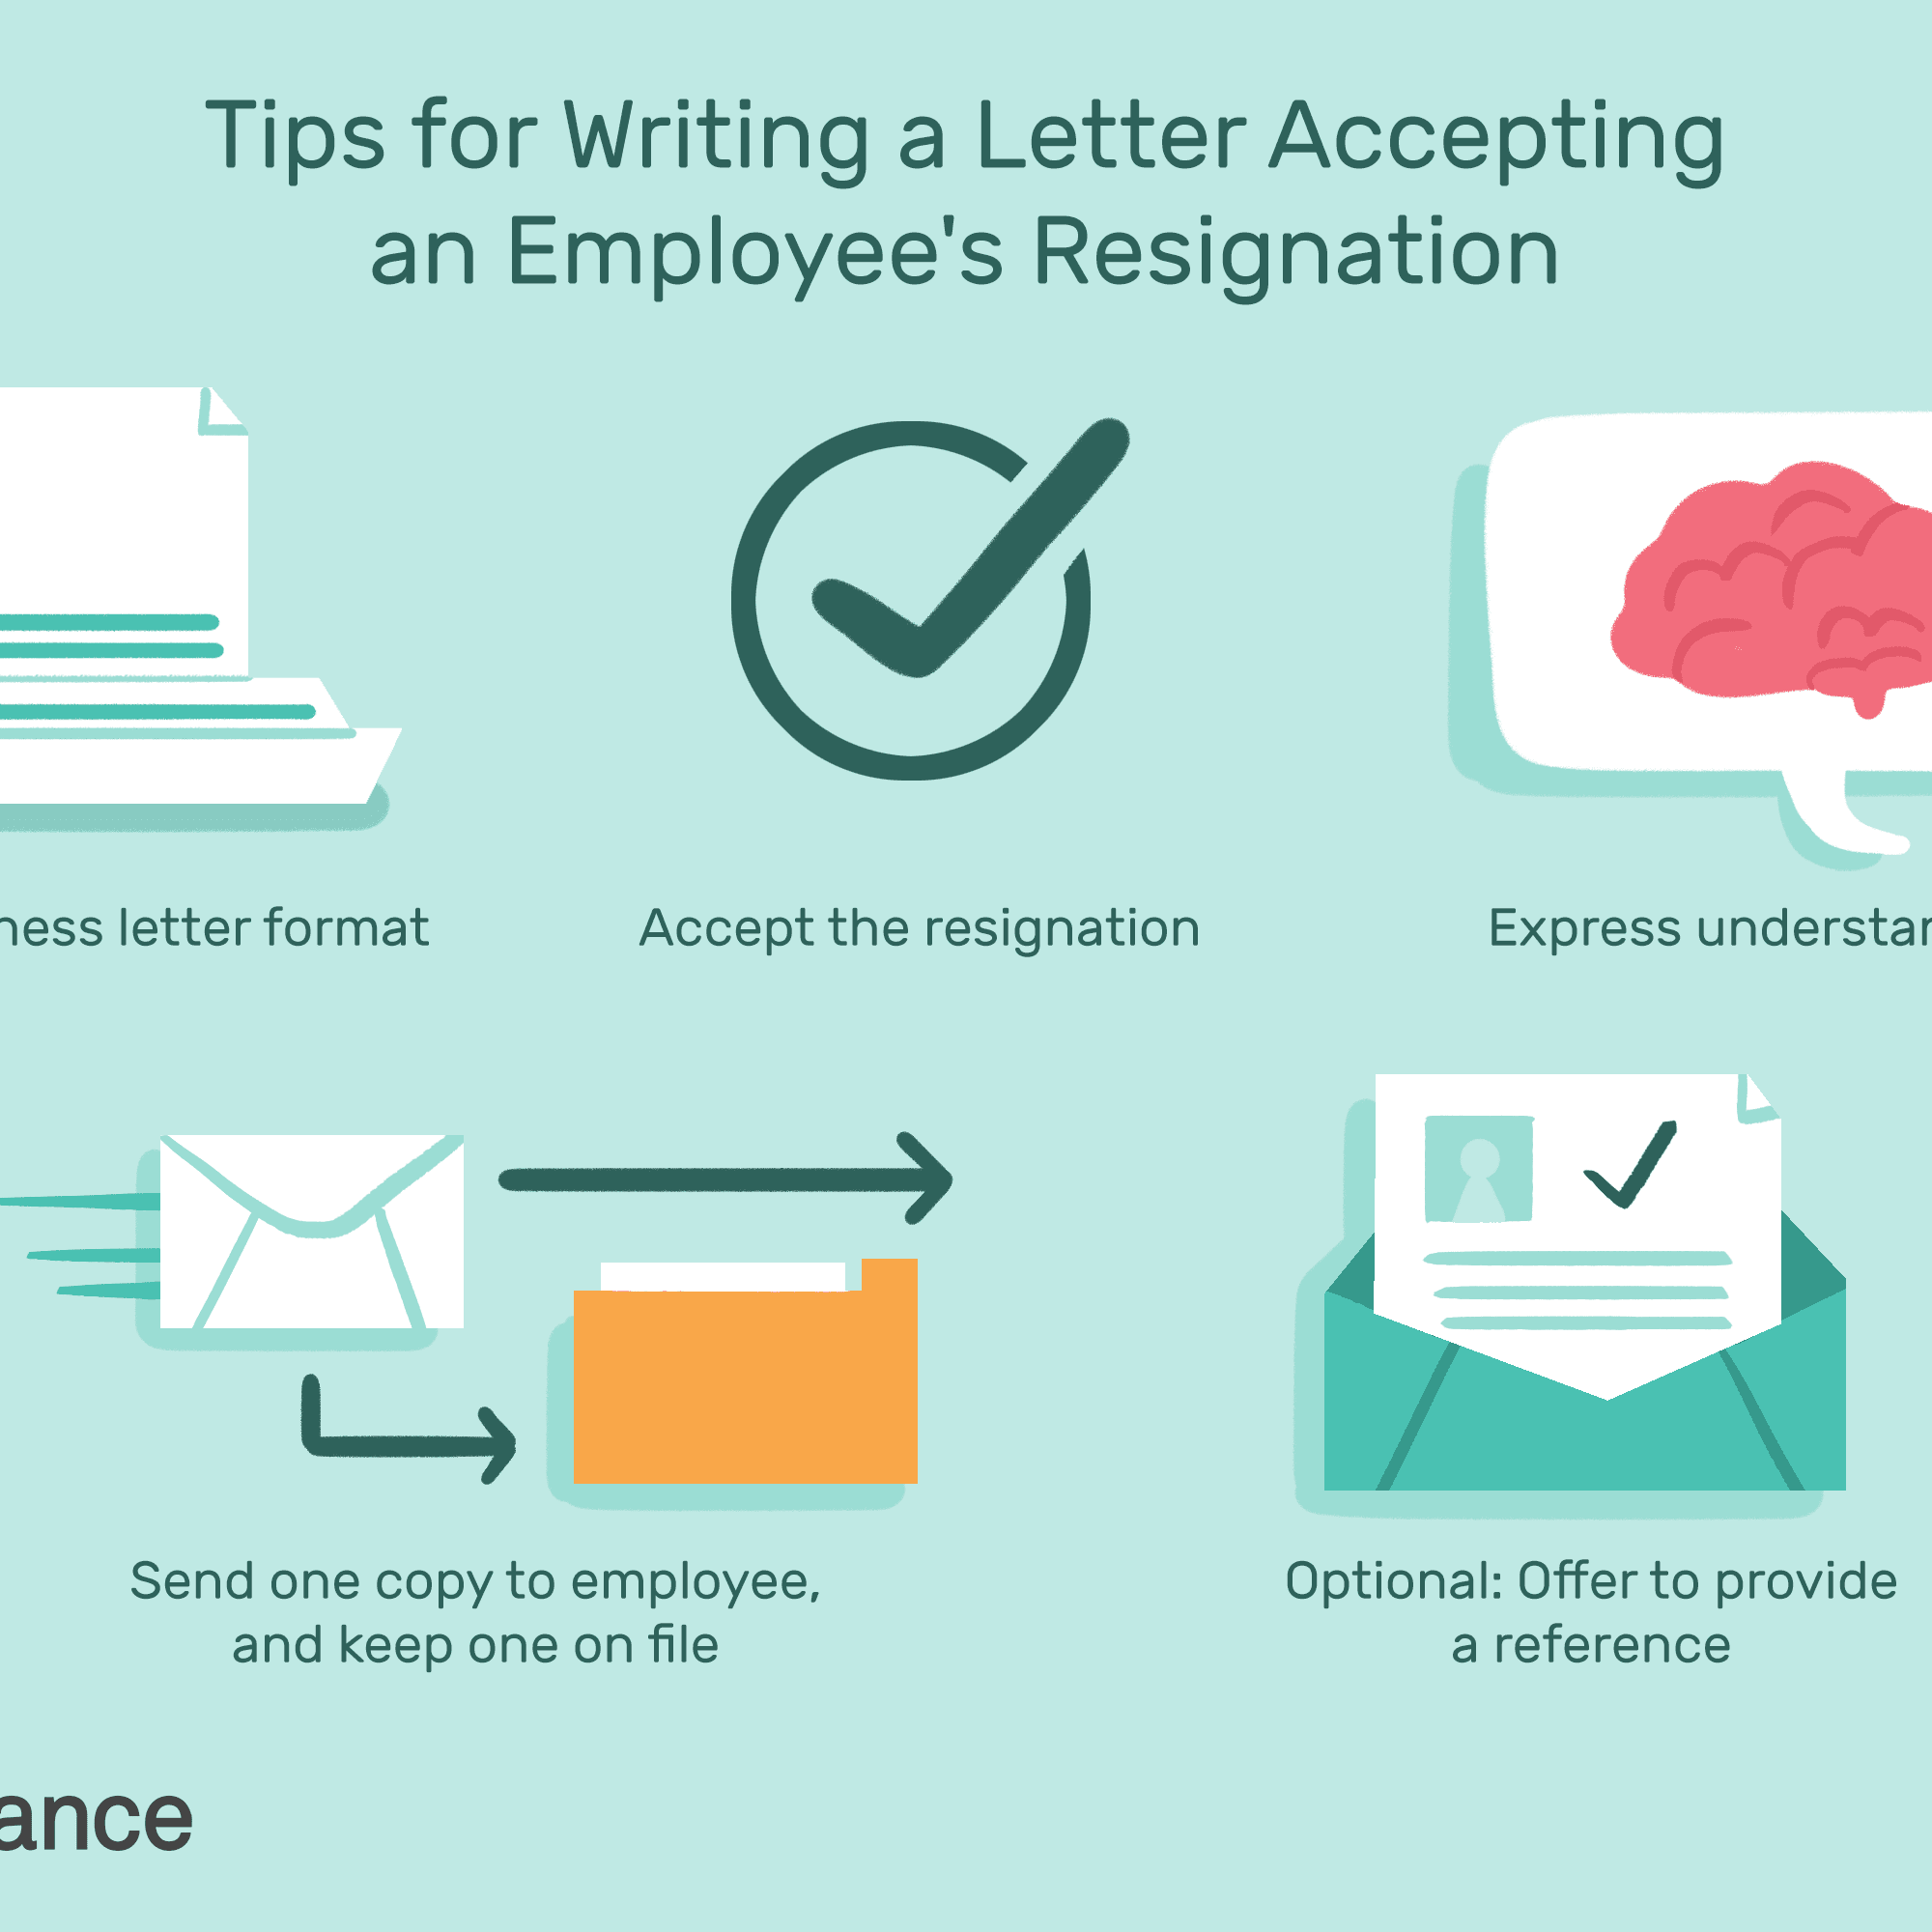 Sample Letters Accepting an Employee\'s Resignation